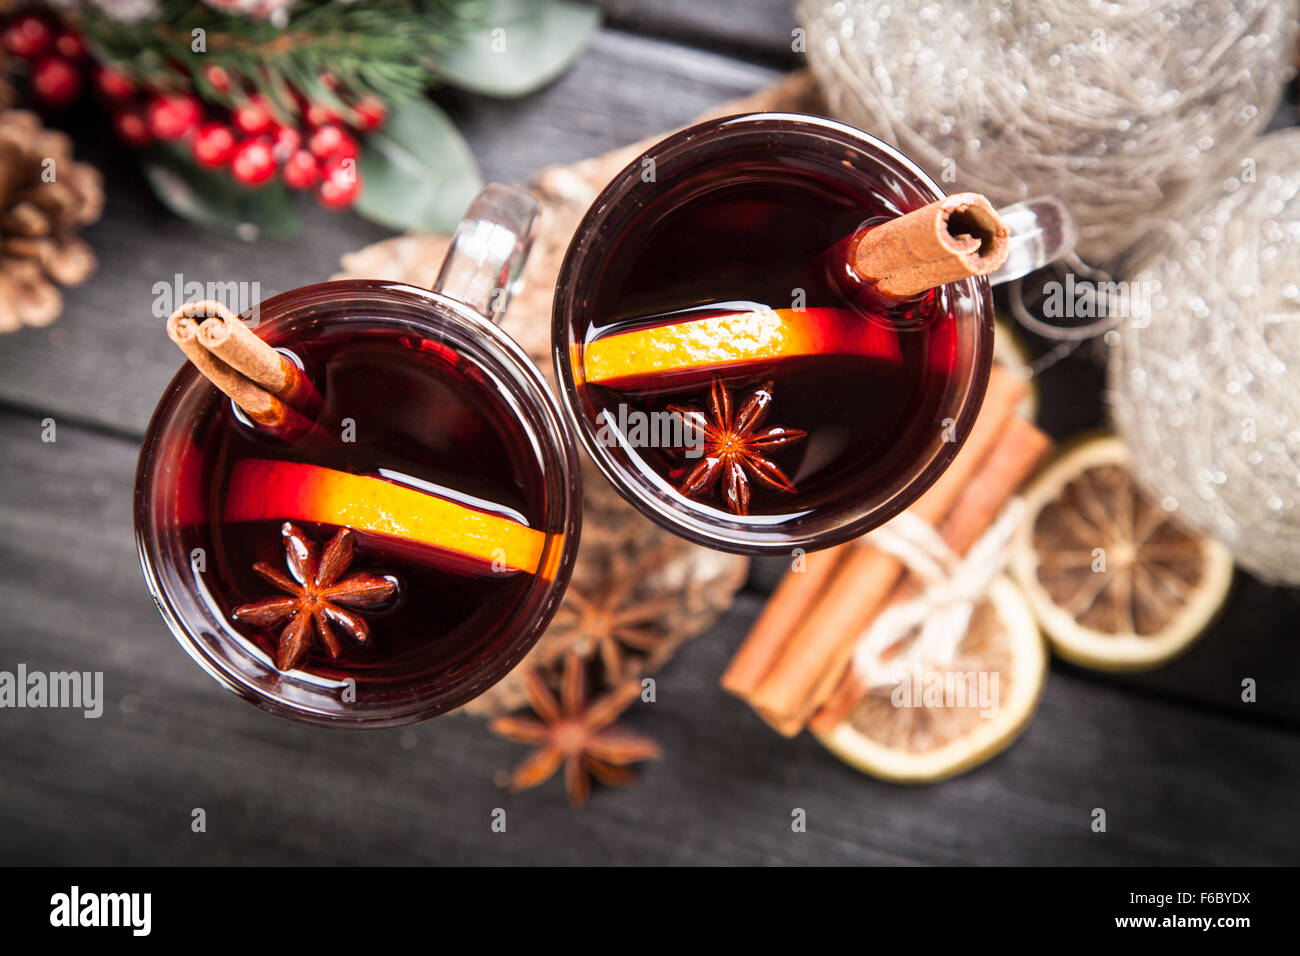 Vin chaud à la cannelle et d'orange Photo Stock